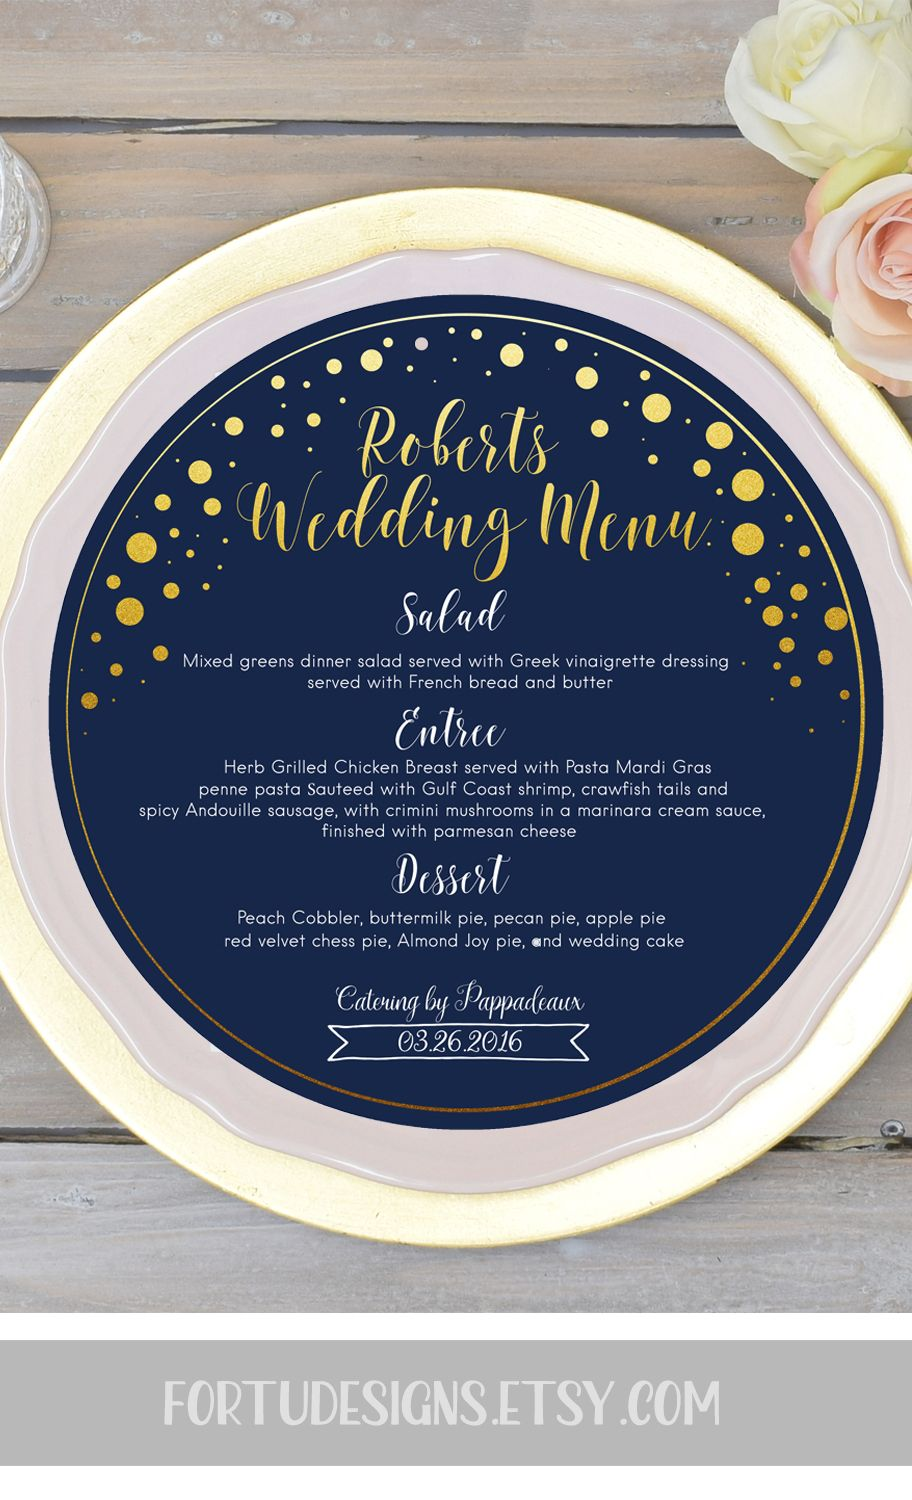 graphic about Printable Menu Card referred to as Gold armed forces marriage menu card meal menu playing cards printable menu